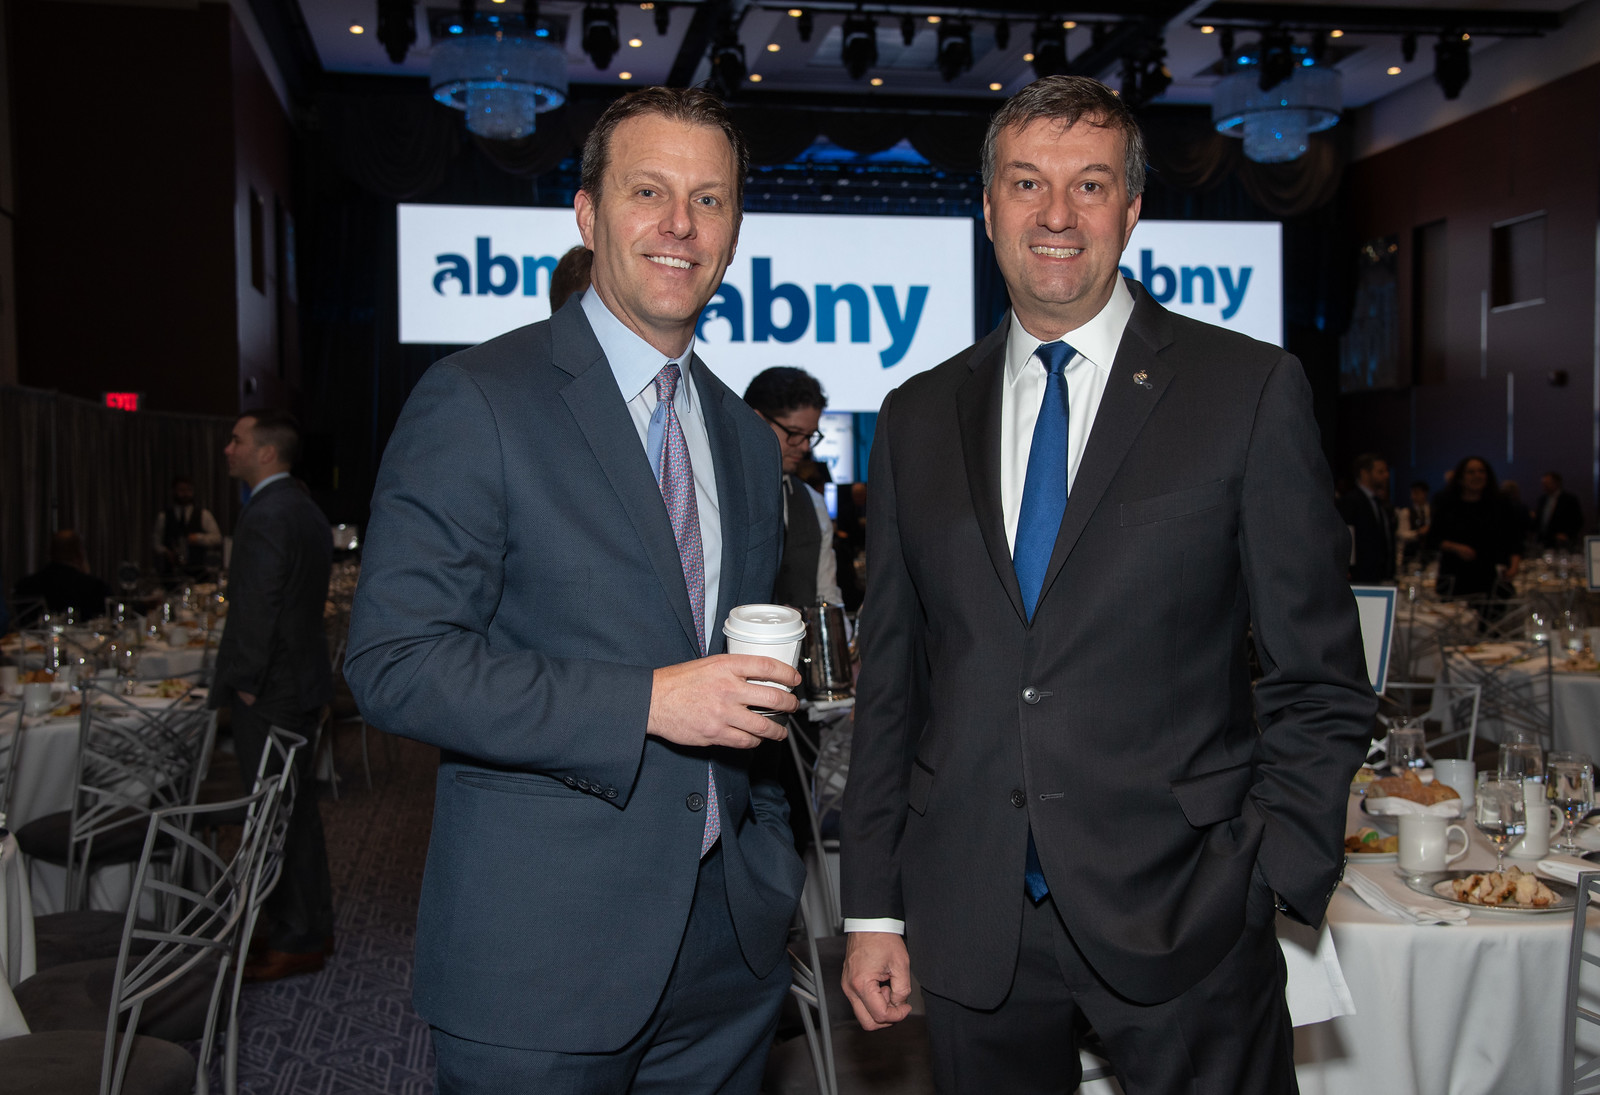 01/06/20 - ABNY Power Luncheon with Governor Cuomo